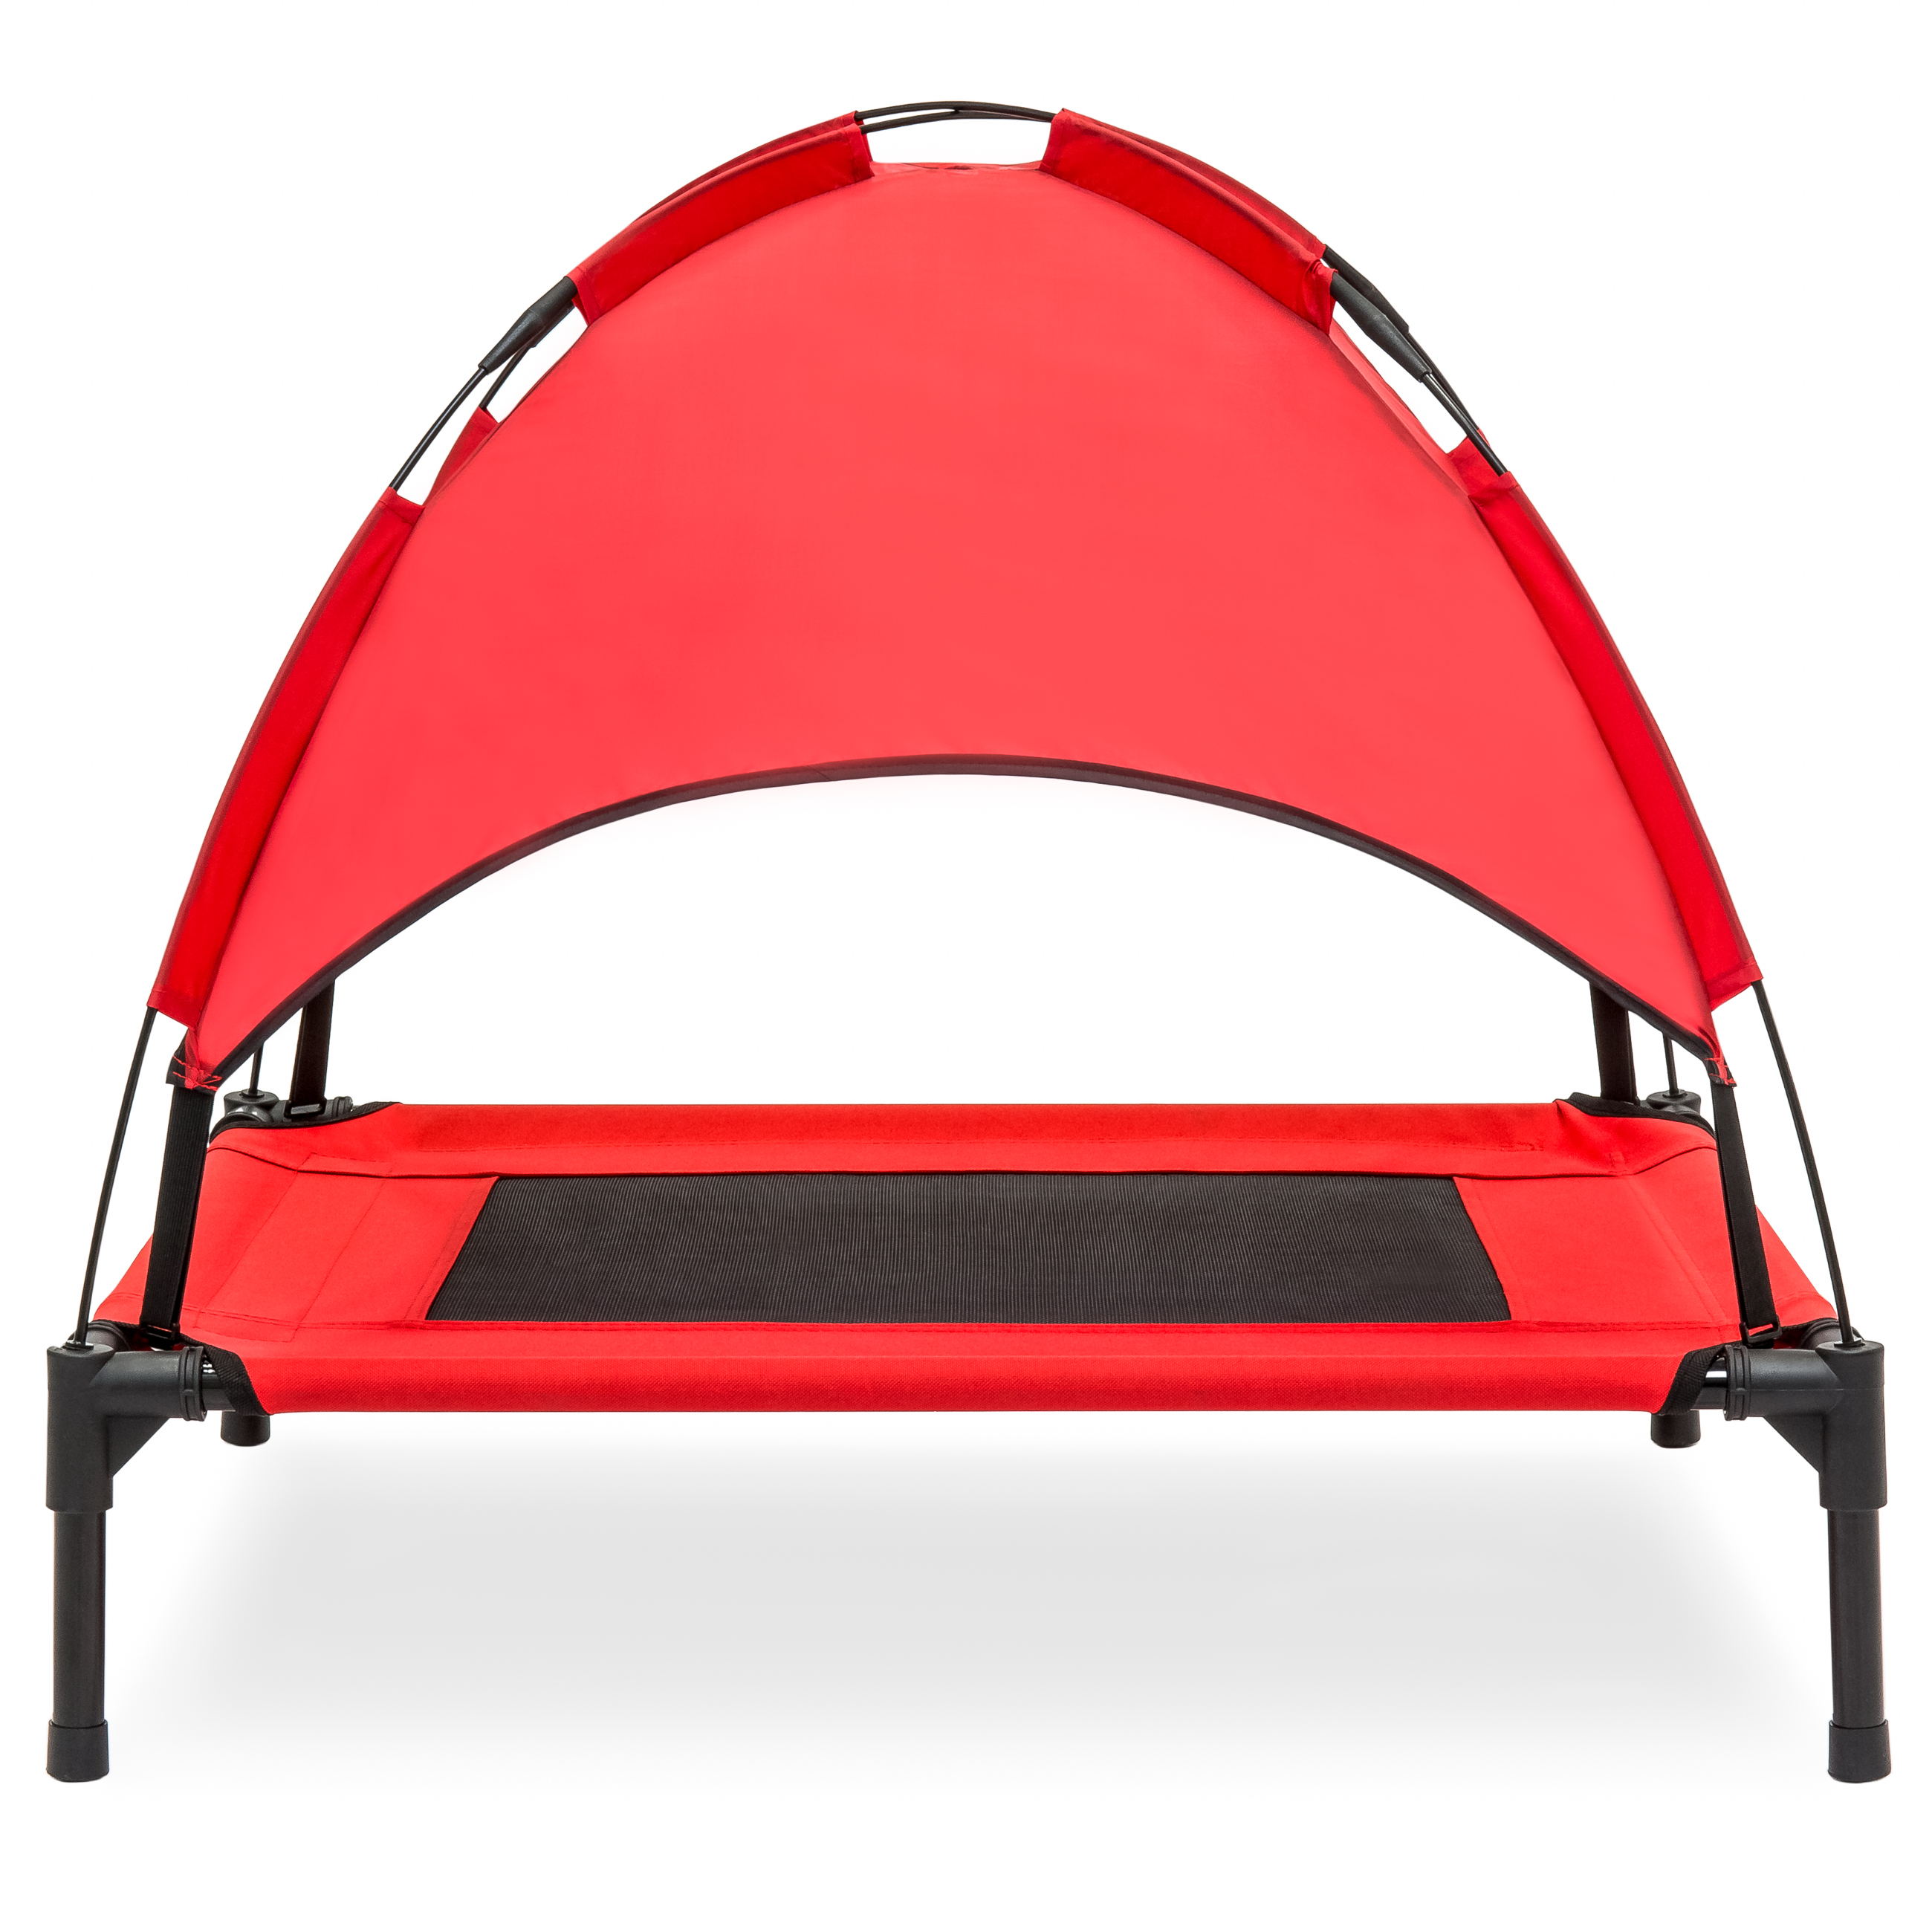 30 Quot Raised Mesh Cot Cooling Dog Bed W Canopy Tent Travel